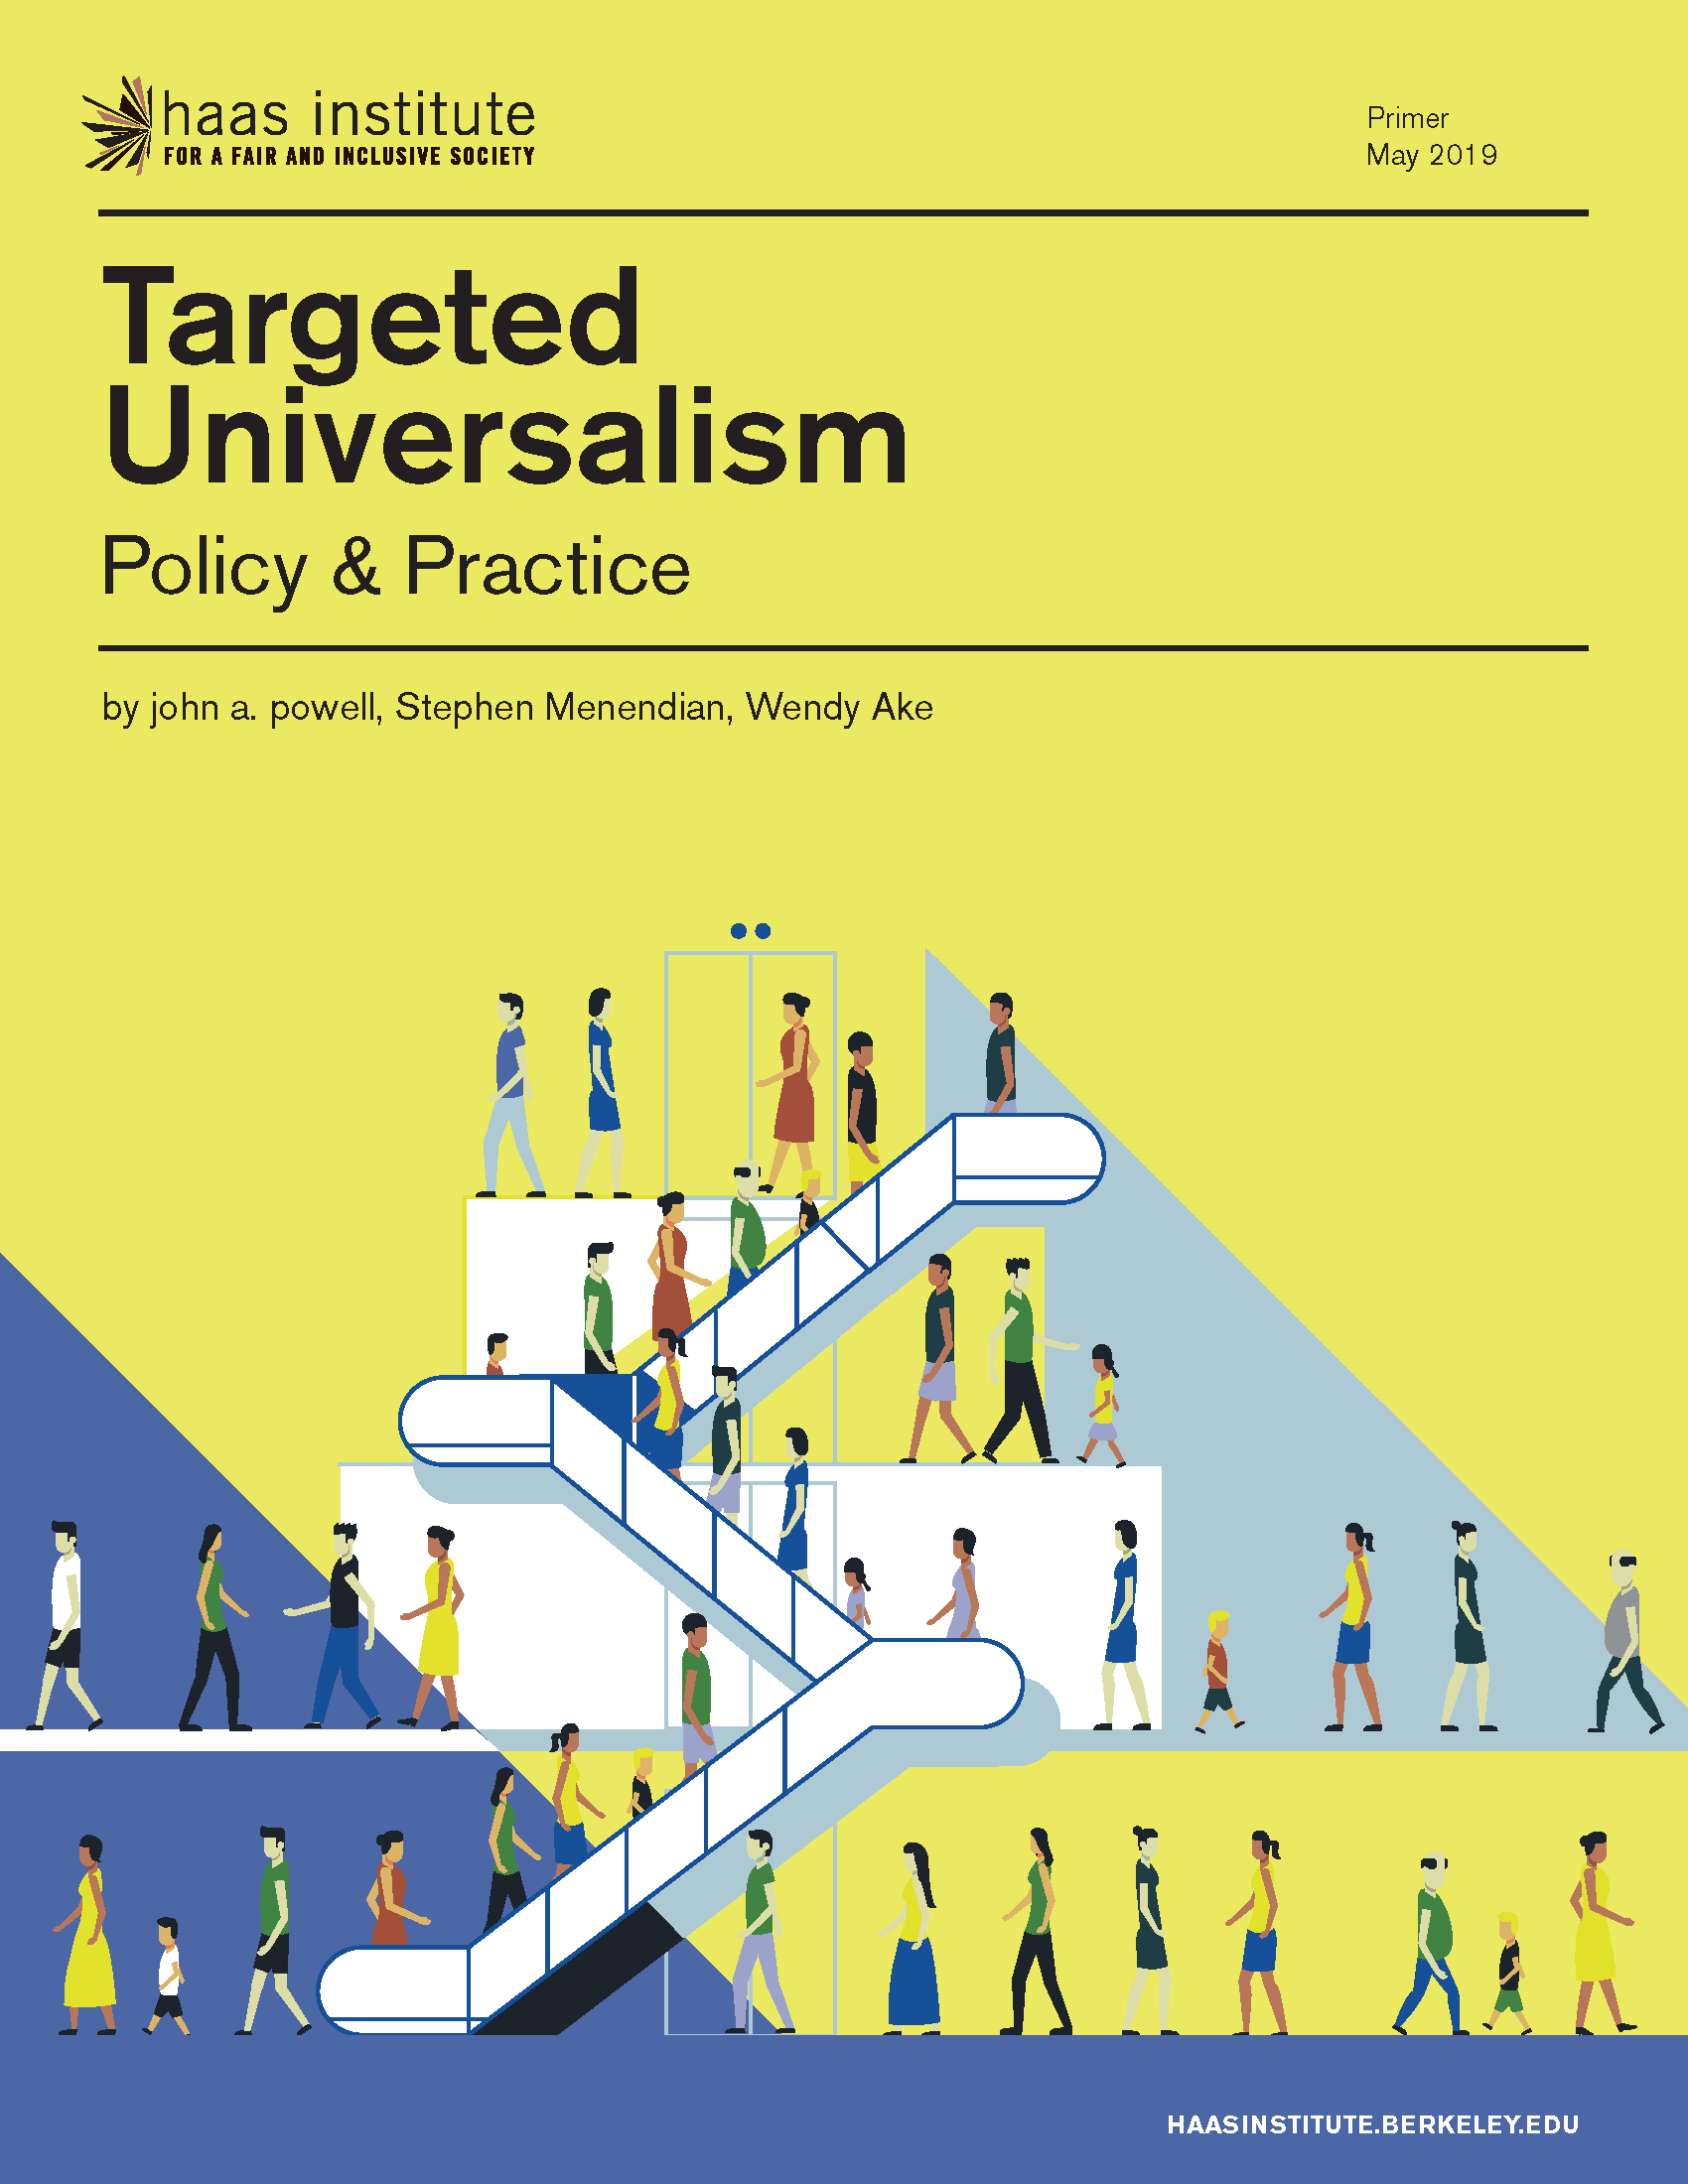 Cover of the Targeted Universalism primer which has a blue and yellow background and shows able bodied caricatures of people of different backgrounds walking and using escalators